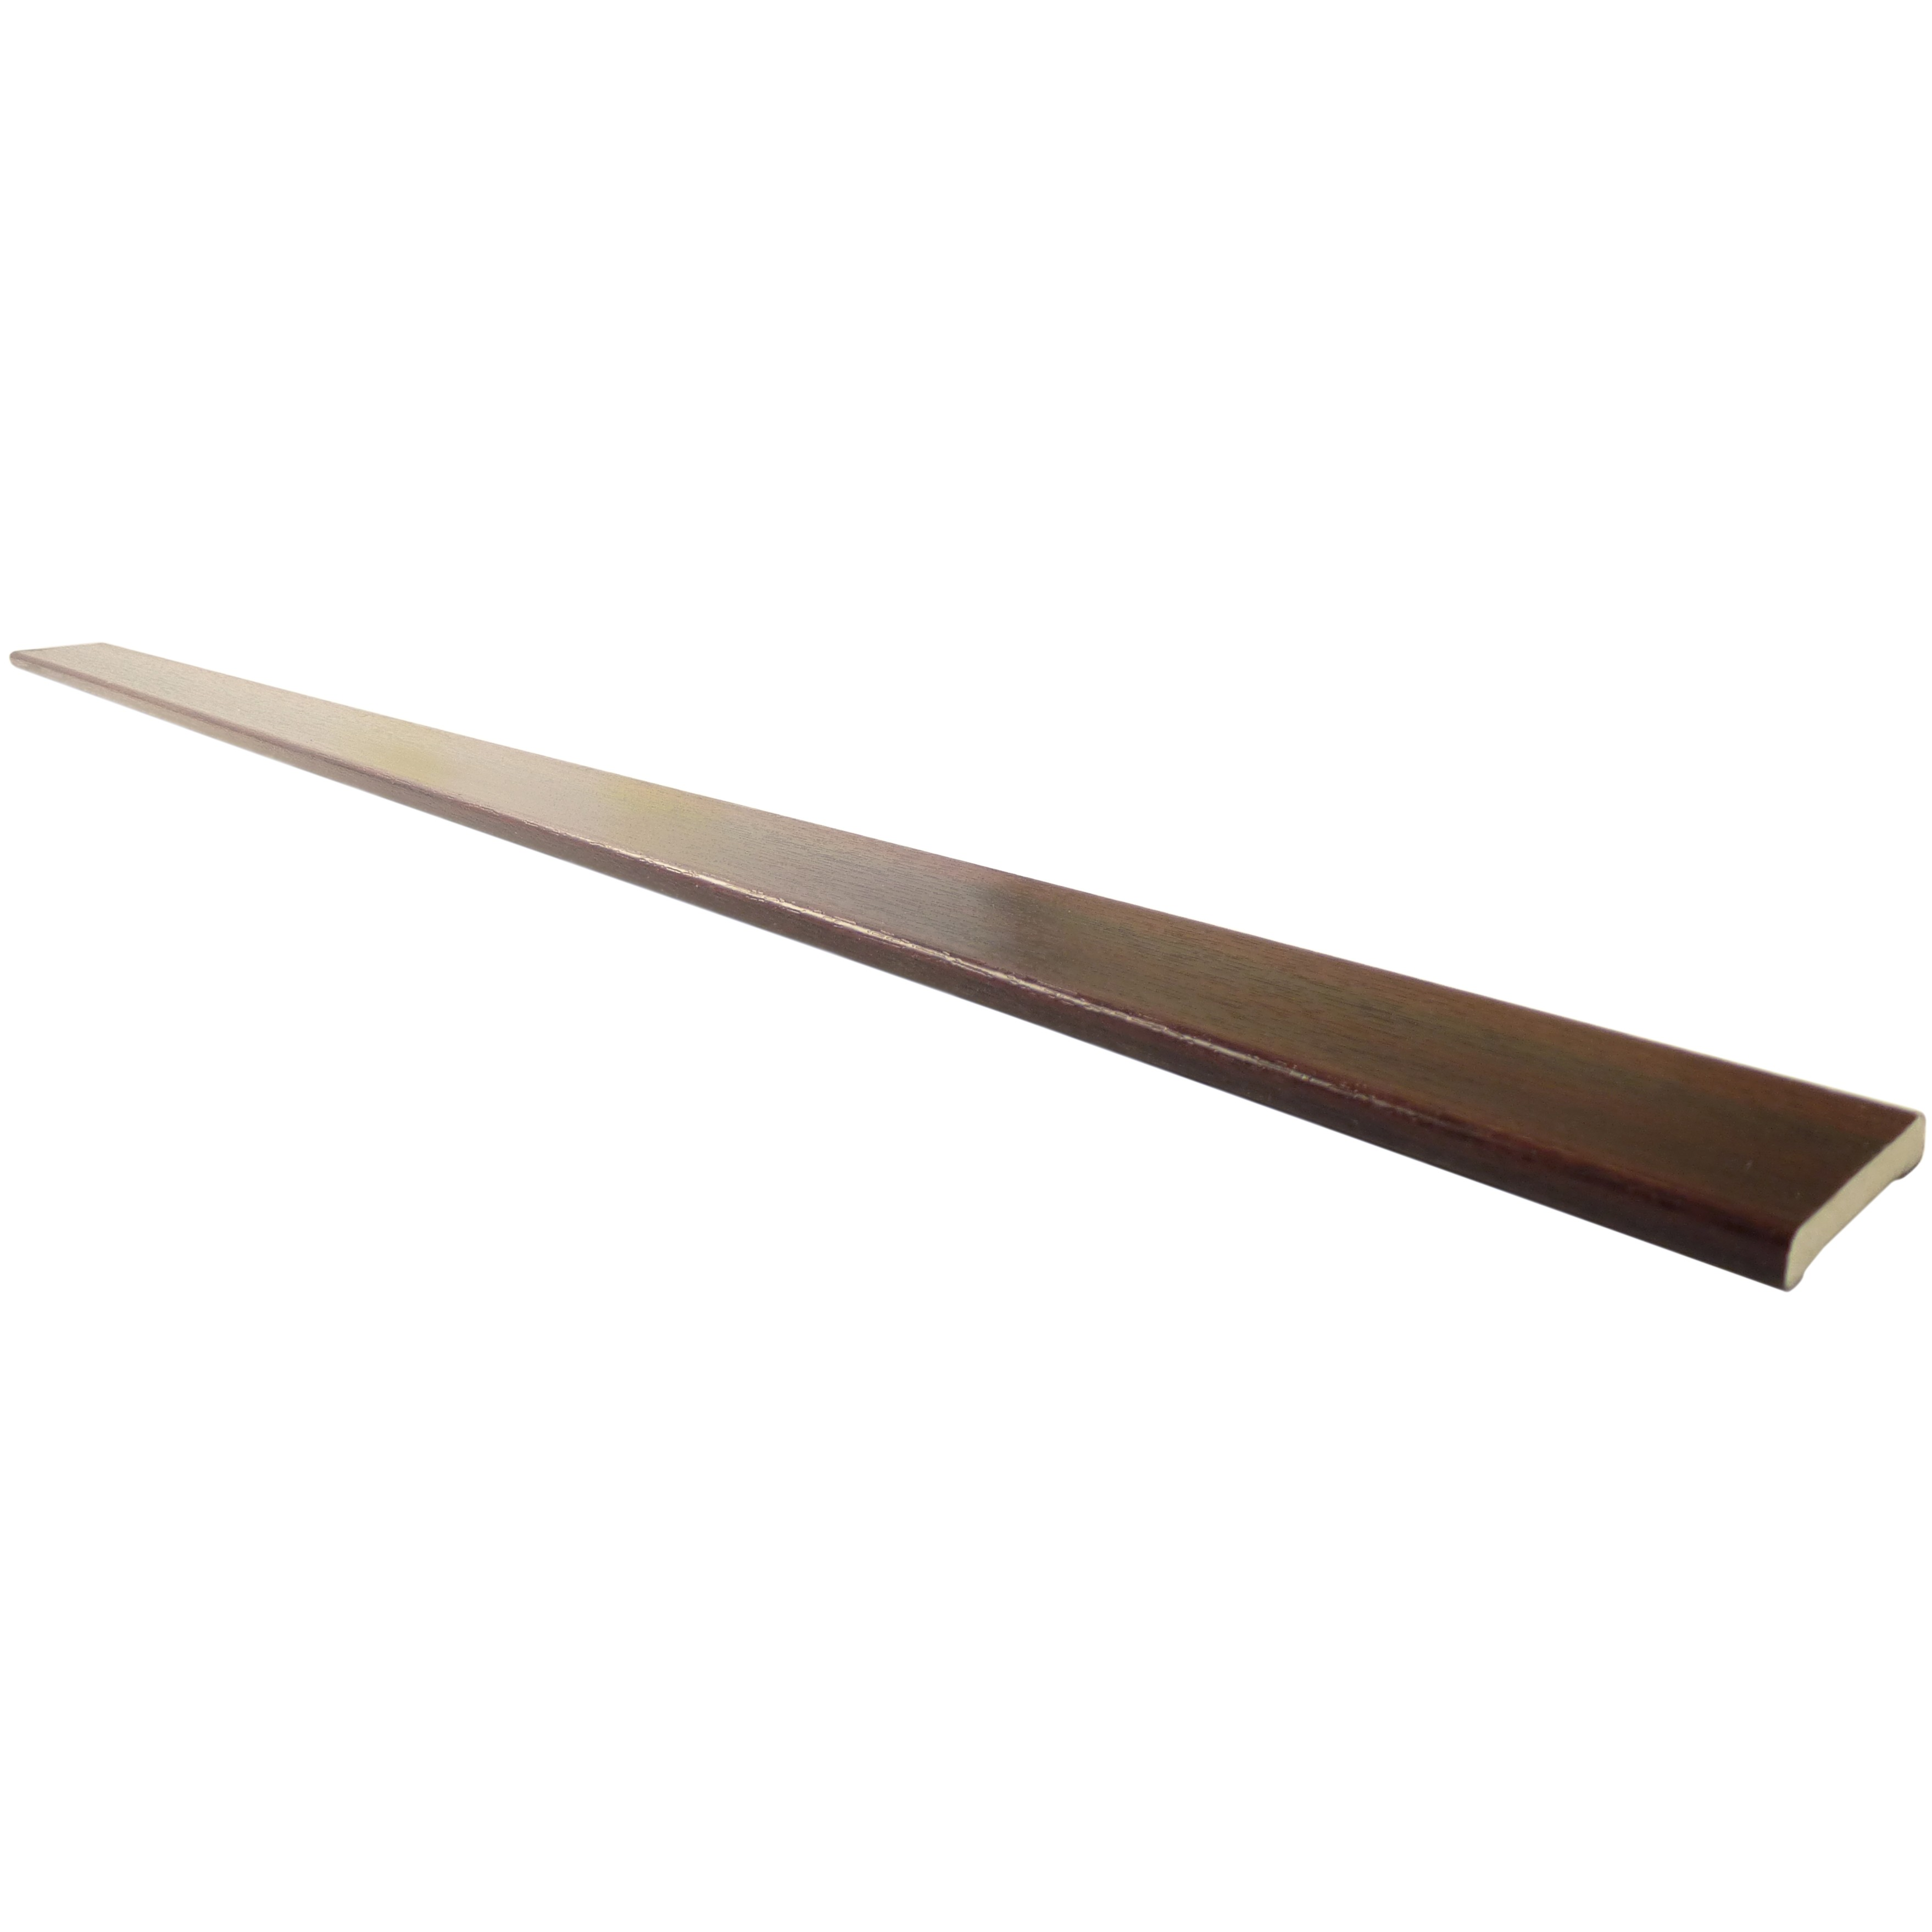 Freefoam 6mm Plastic Architrave - Woodgrain Mahogany, 40mm, 5 metre